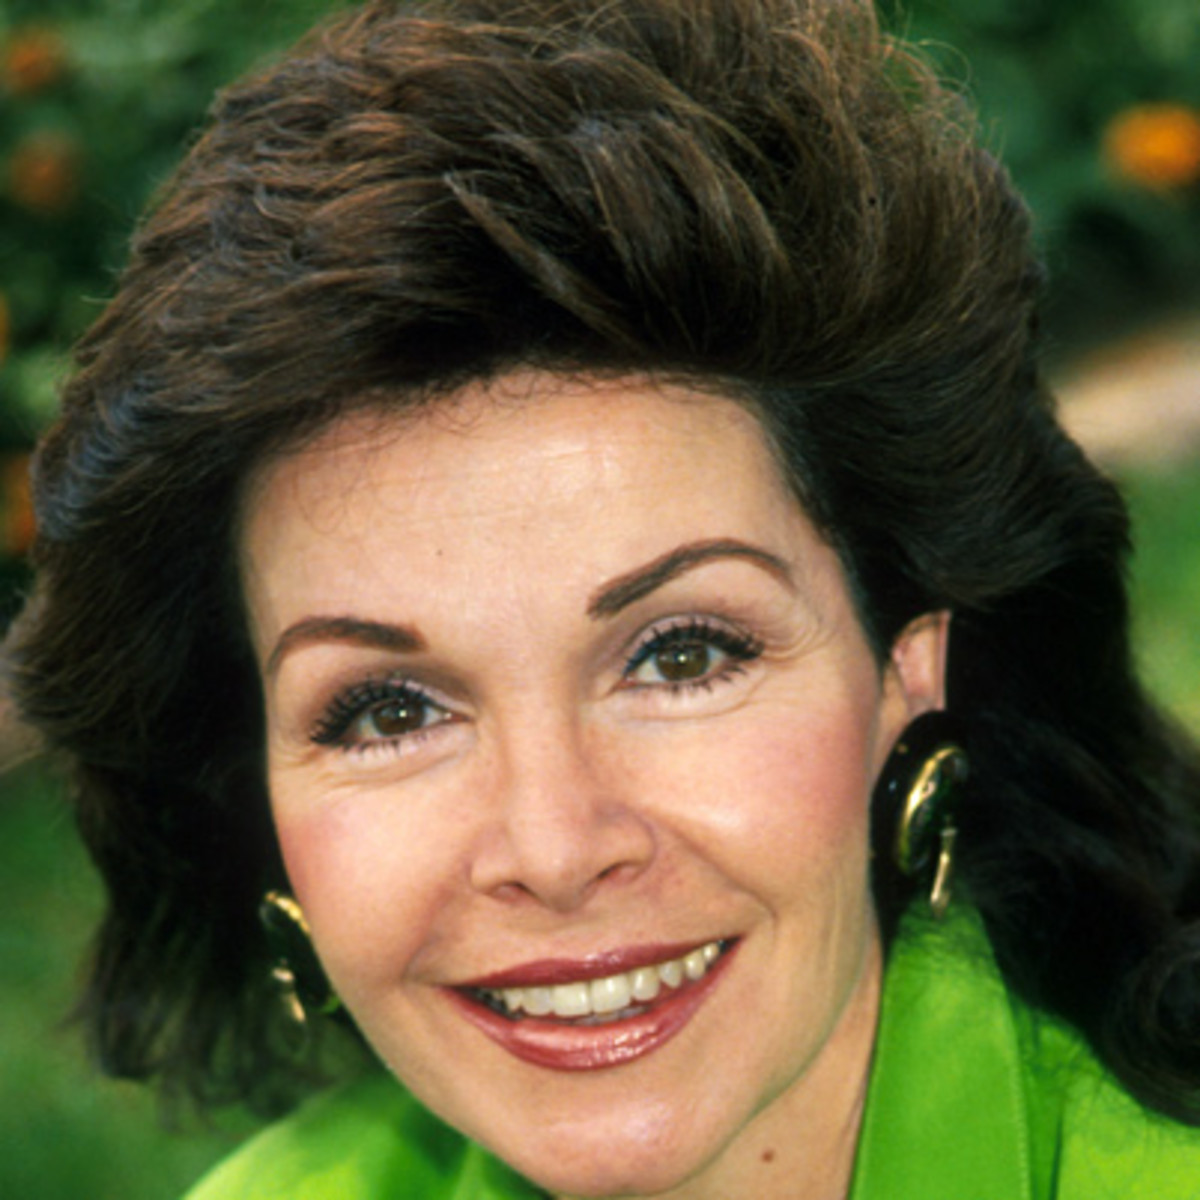 Annette Funicello nudes (47 photo) Selfie, 2017, cameltoe